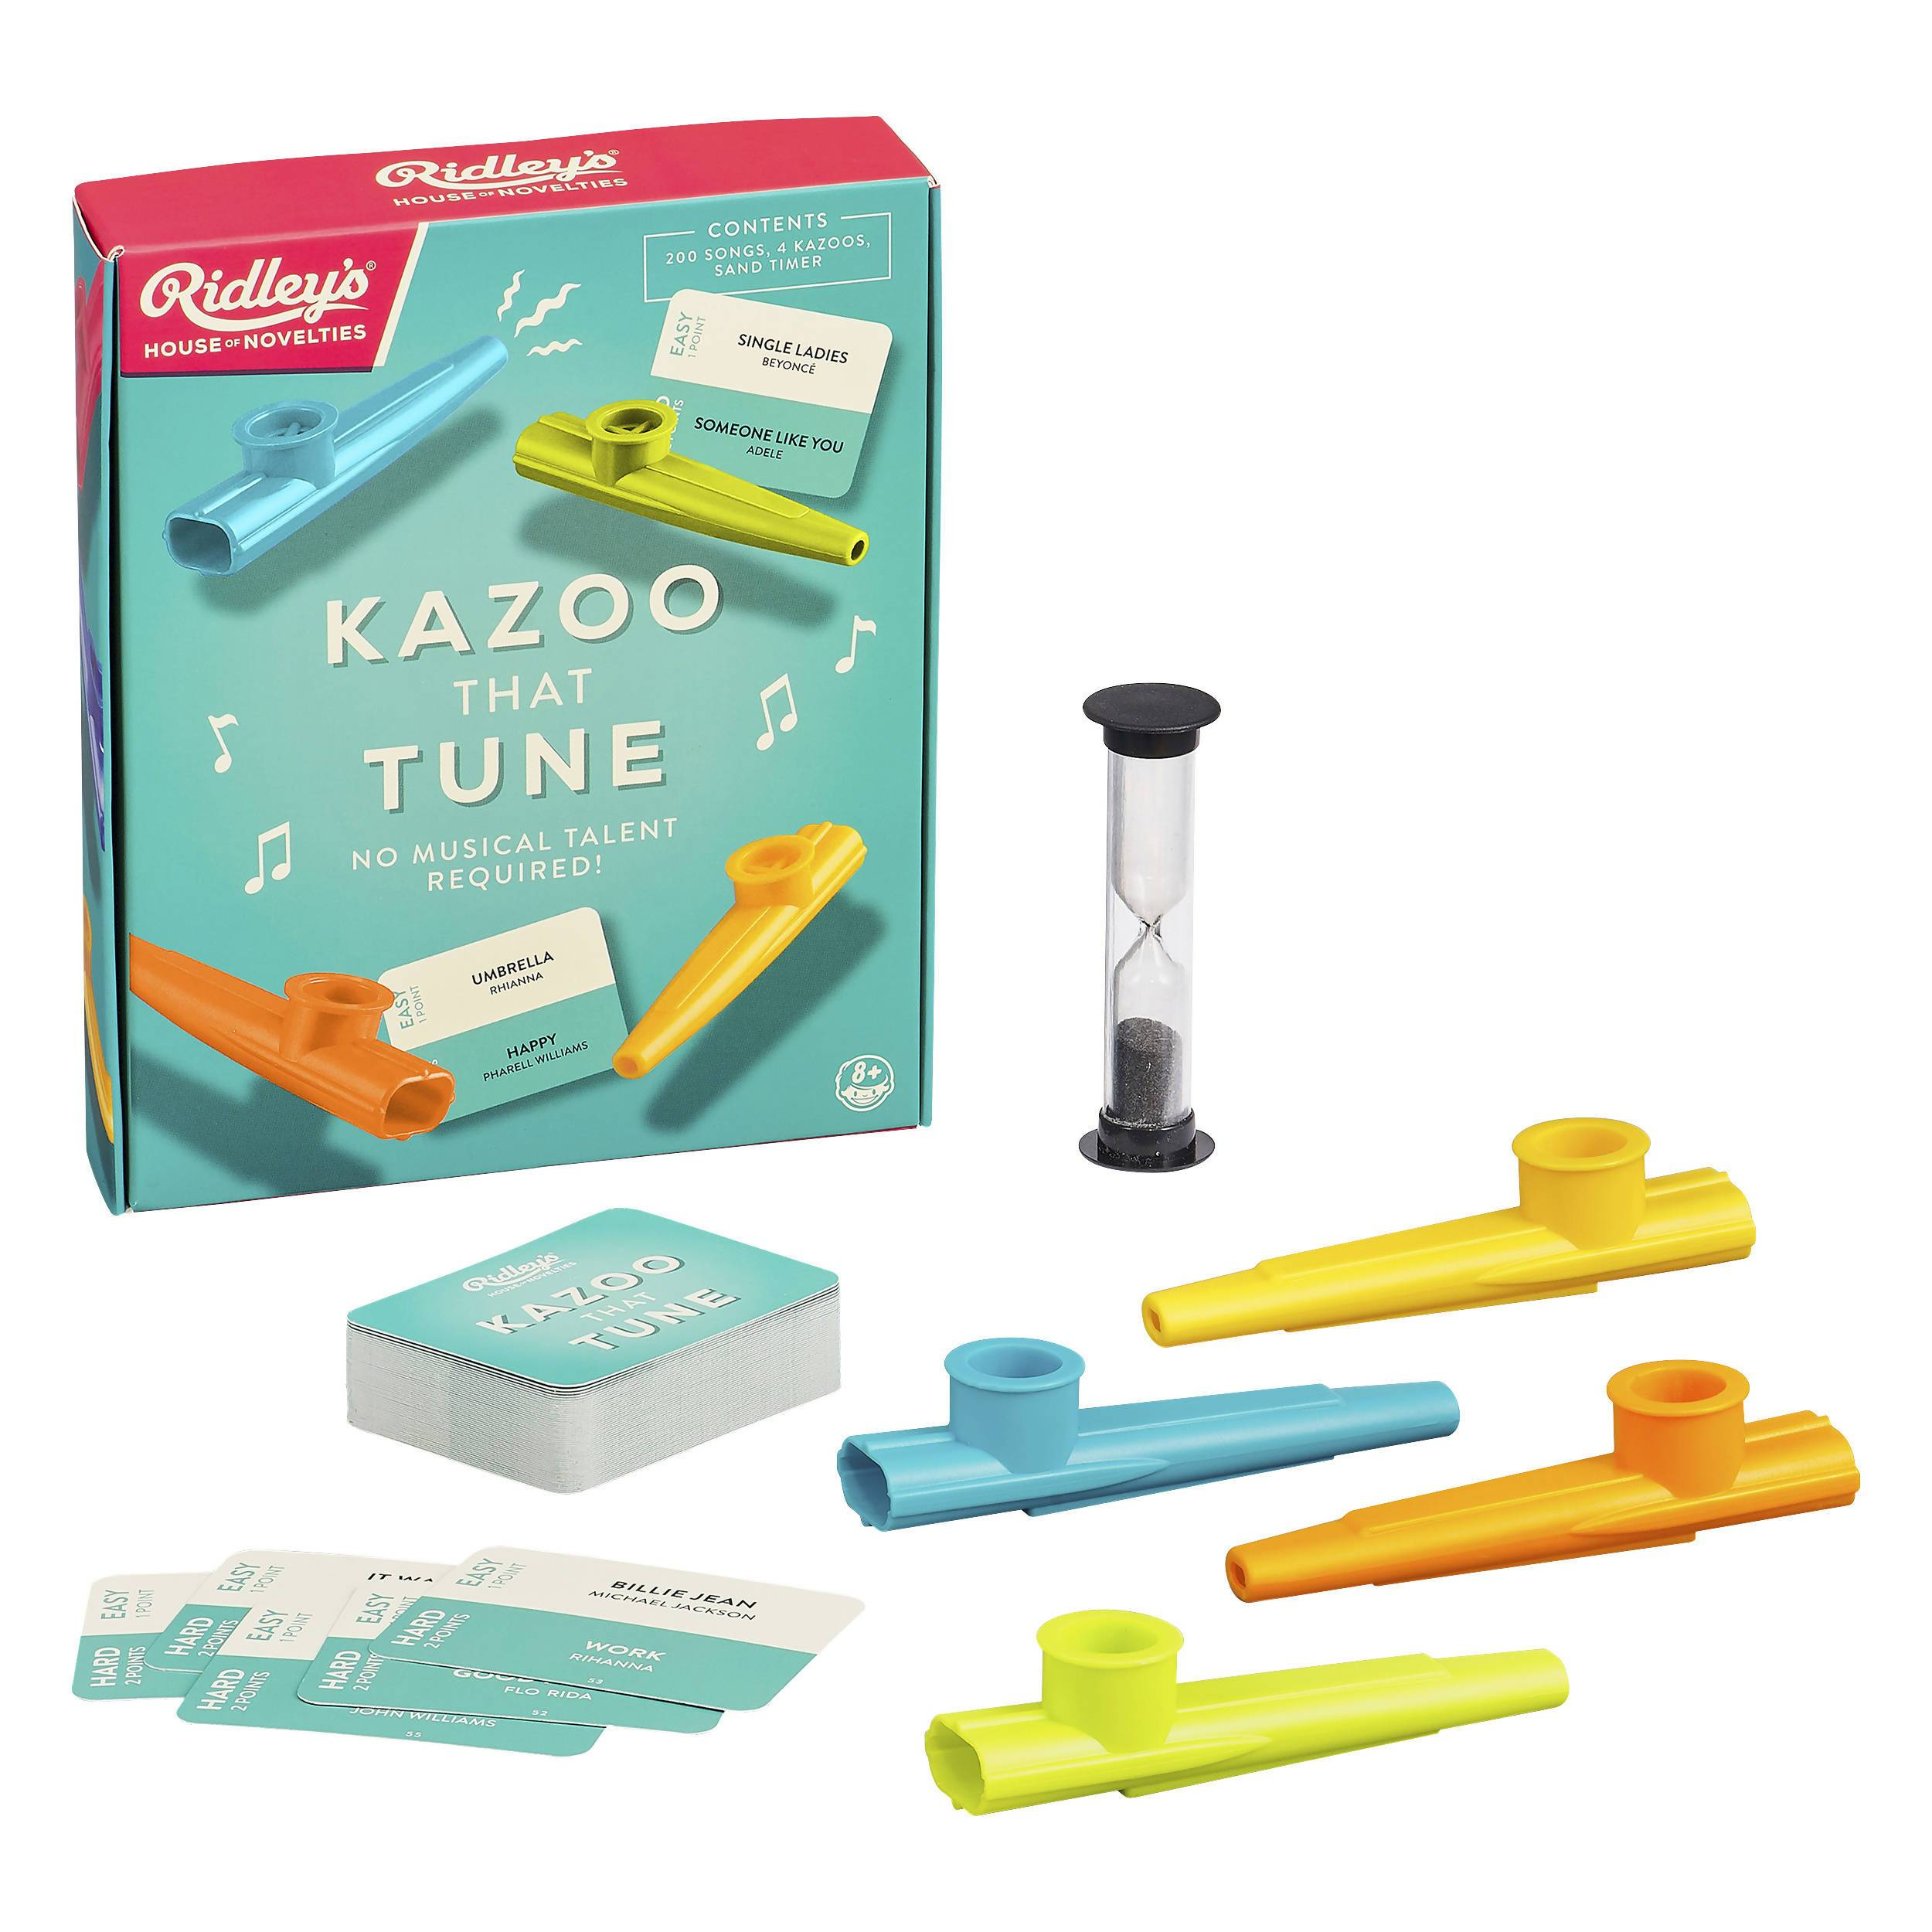 Ridley's Kazoo That Tune Game - Games - The Planet Collection - Naiise